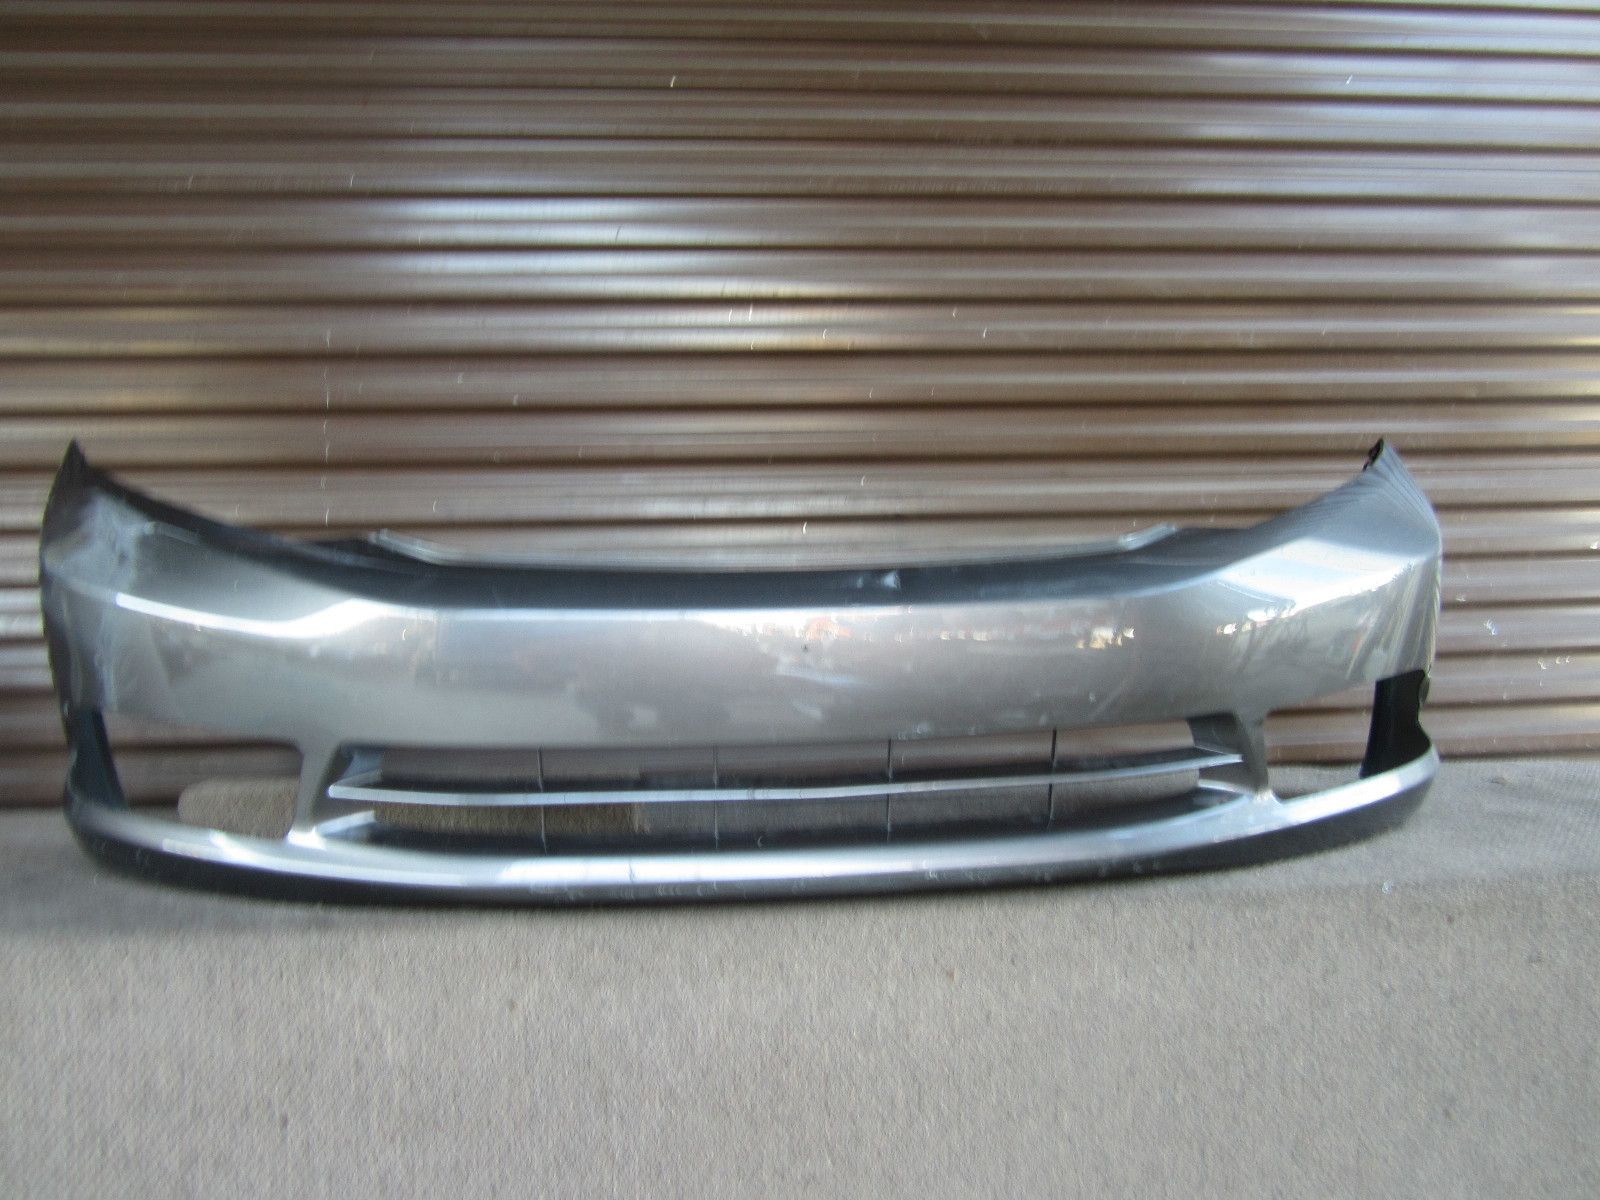 Honda Civic Sedan Bumper Delantero 2012 2013